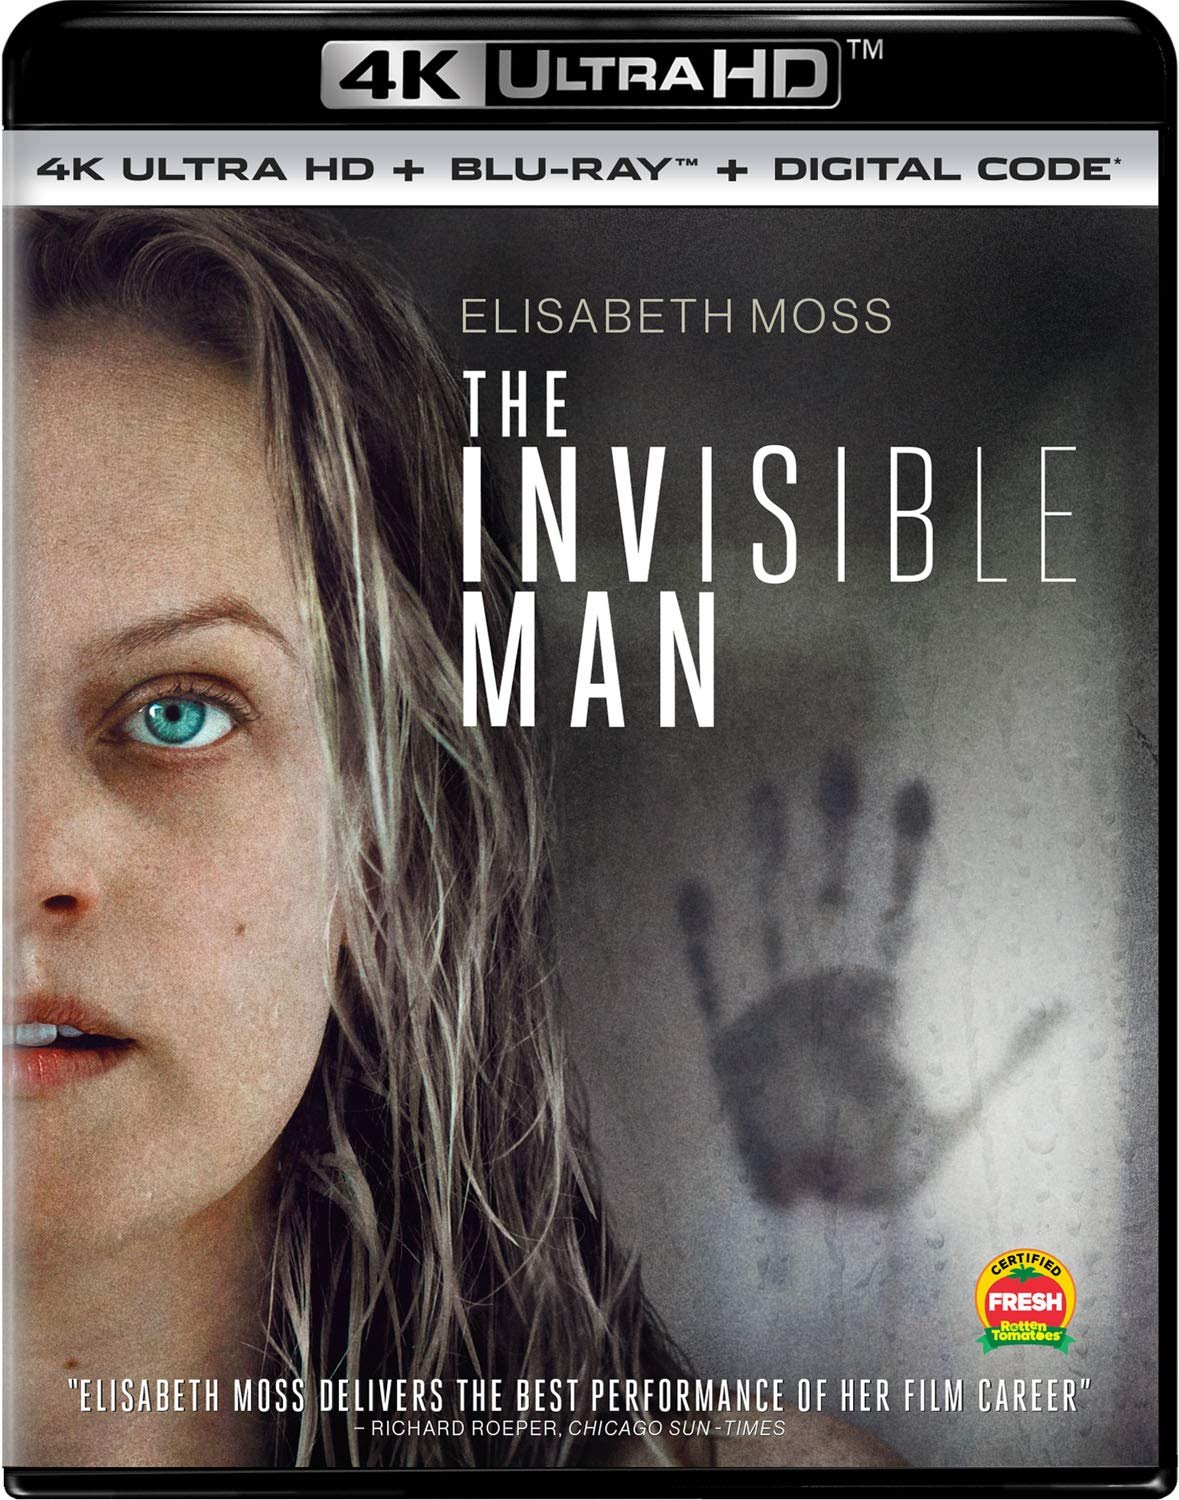 The Invisible Man poster image